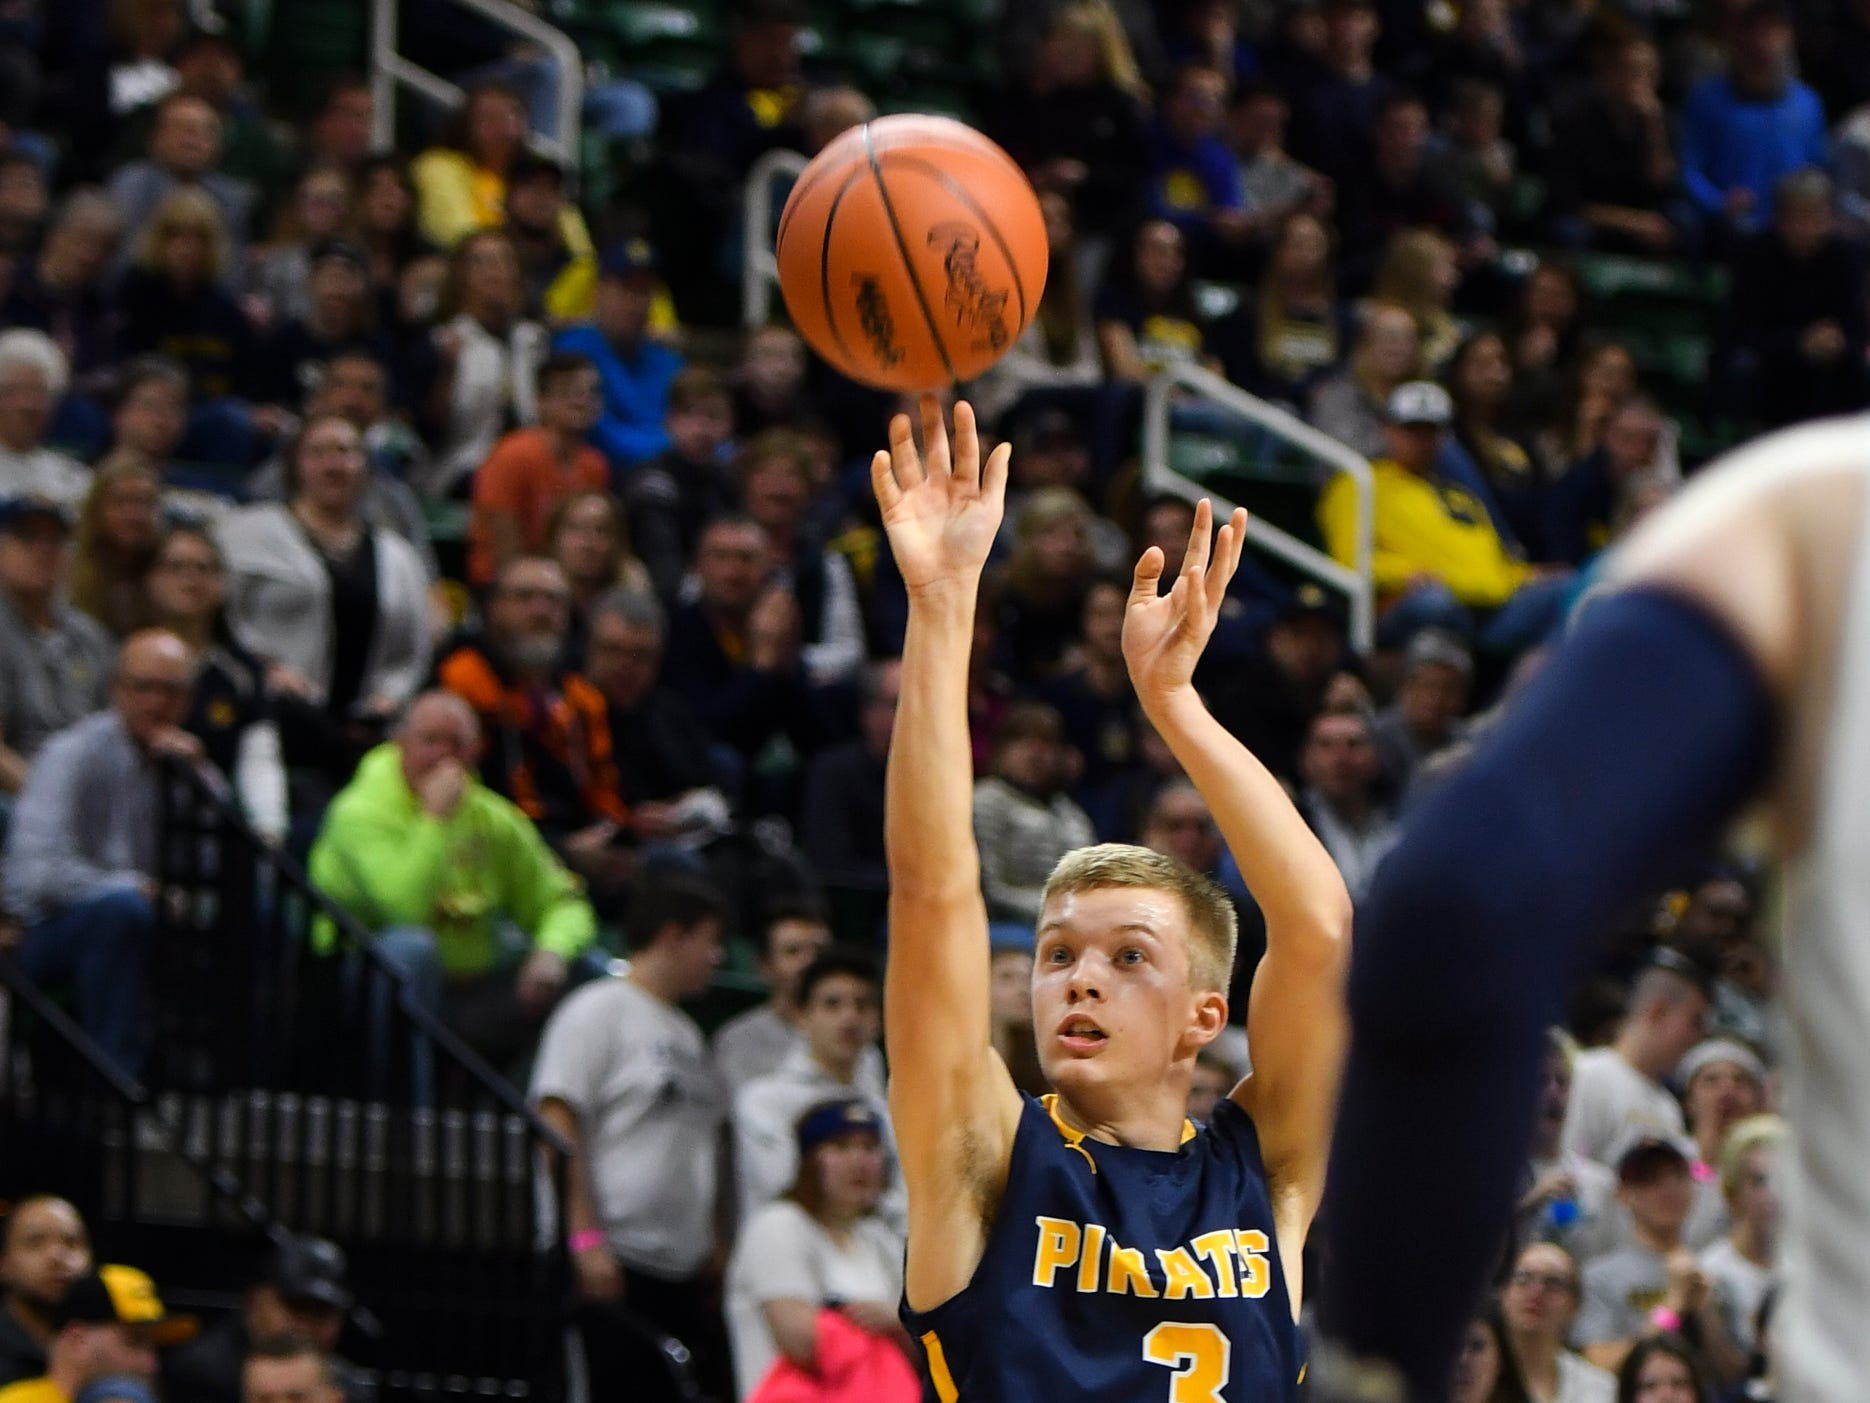 Kyle Stump of Pewamo-Westphalia connects from three point land against Erie-Mason, Thursday, March 14, 2019, during the MHSAA Div. 3 state semifinal at the Breslin Center in East Lansing.   P-W earned a berth in the state final winning 60-45.